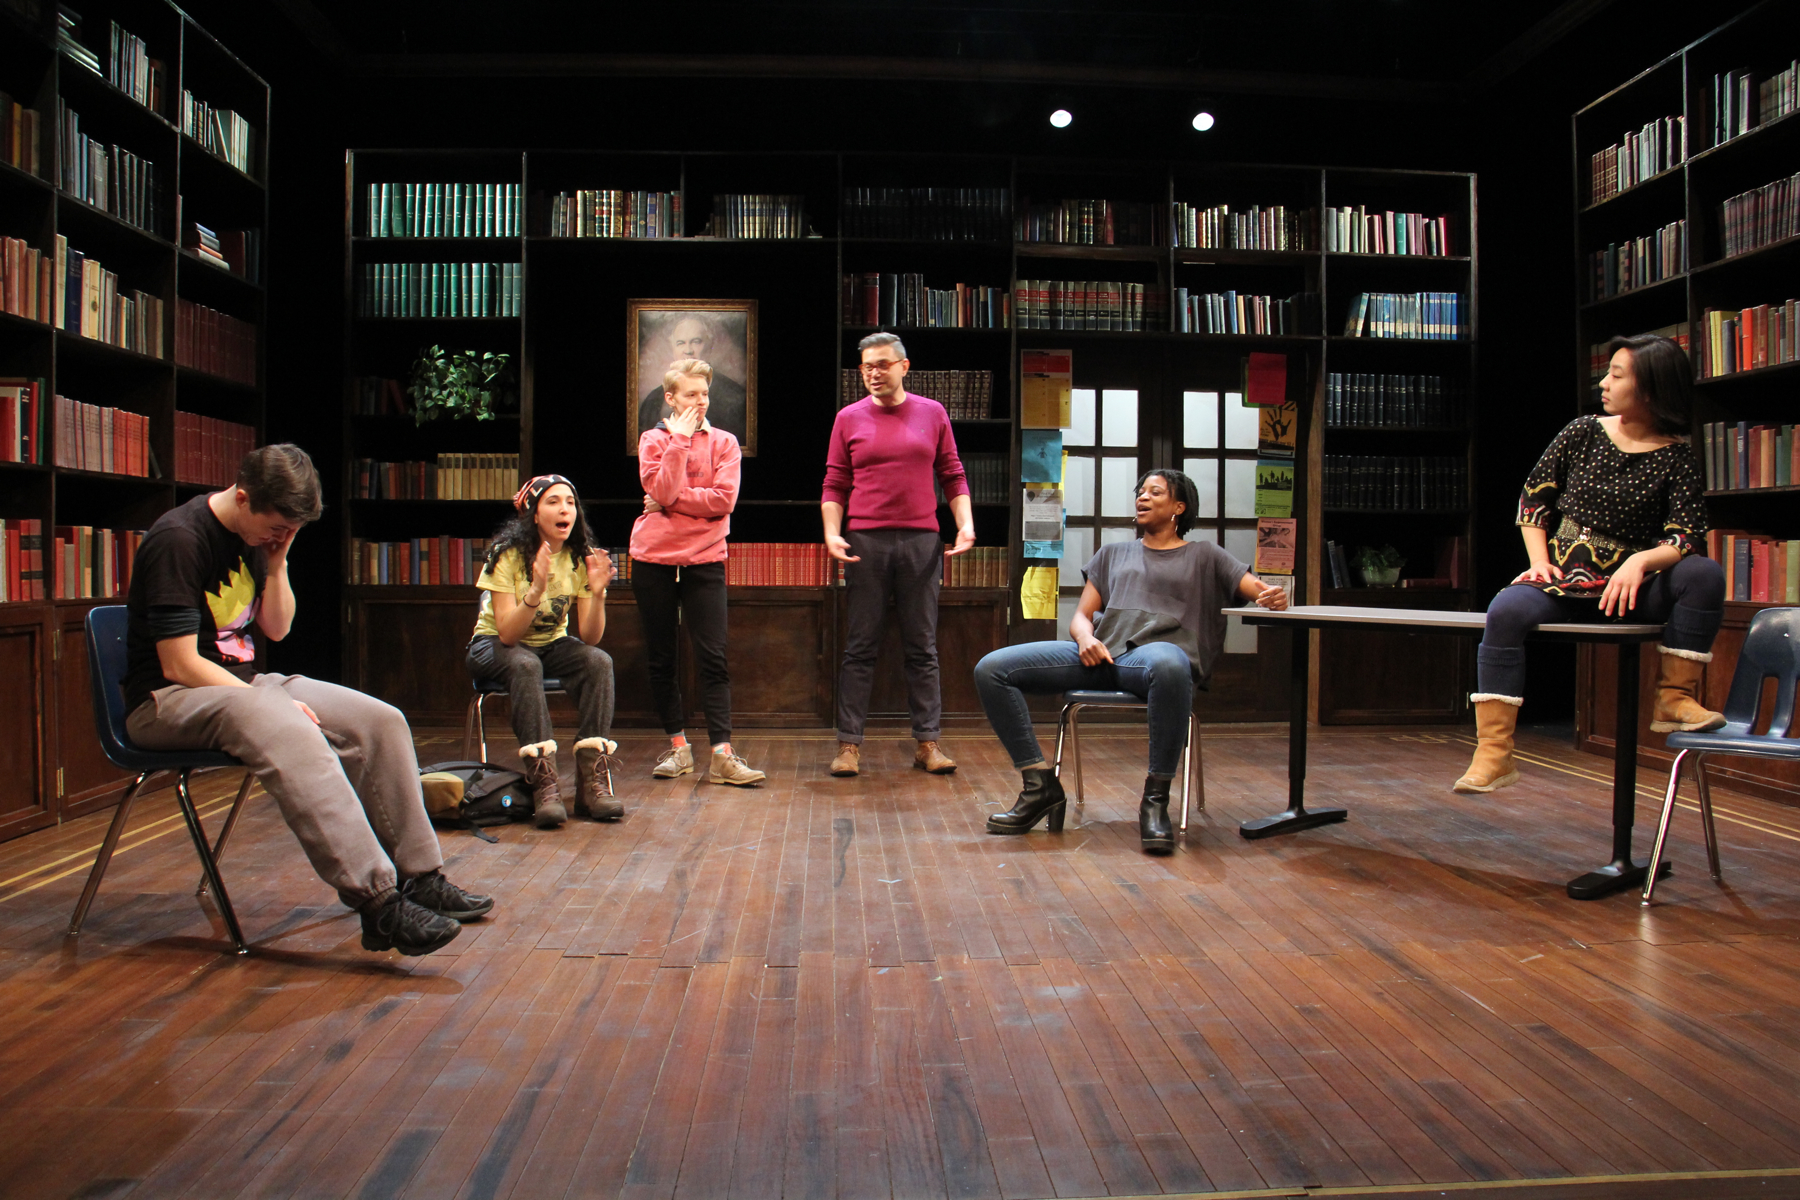 Director Evren Odcikin (center) joins cast members on stage during rehearsal as they take on their male roles.